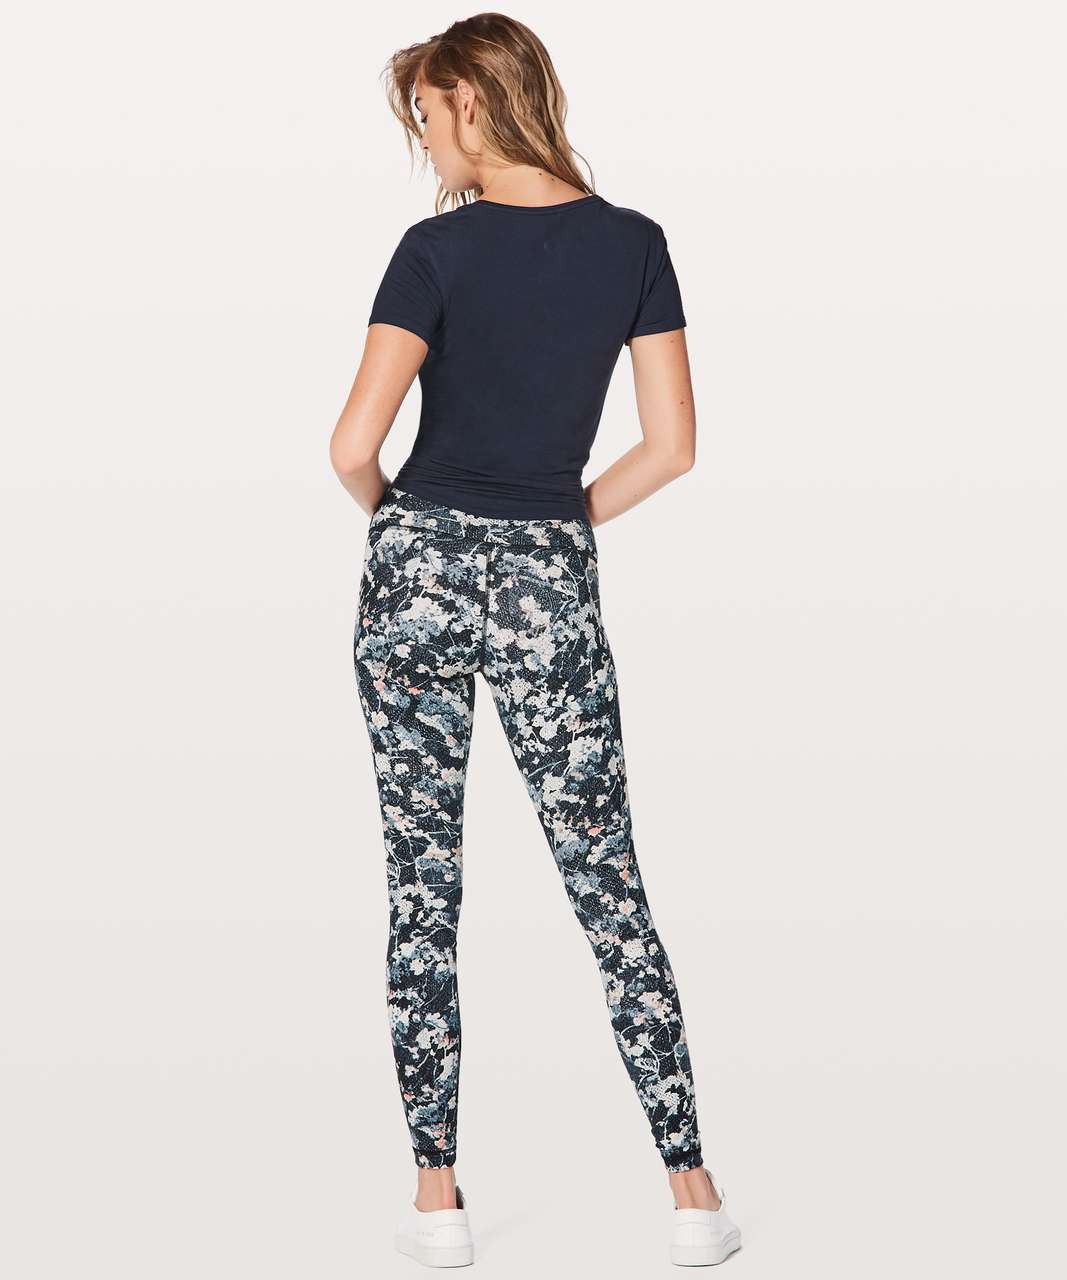 "Lululemon Wunder Under Hi-Rise Tight 28"" - Spring Bloom Multi"